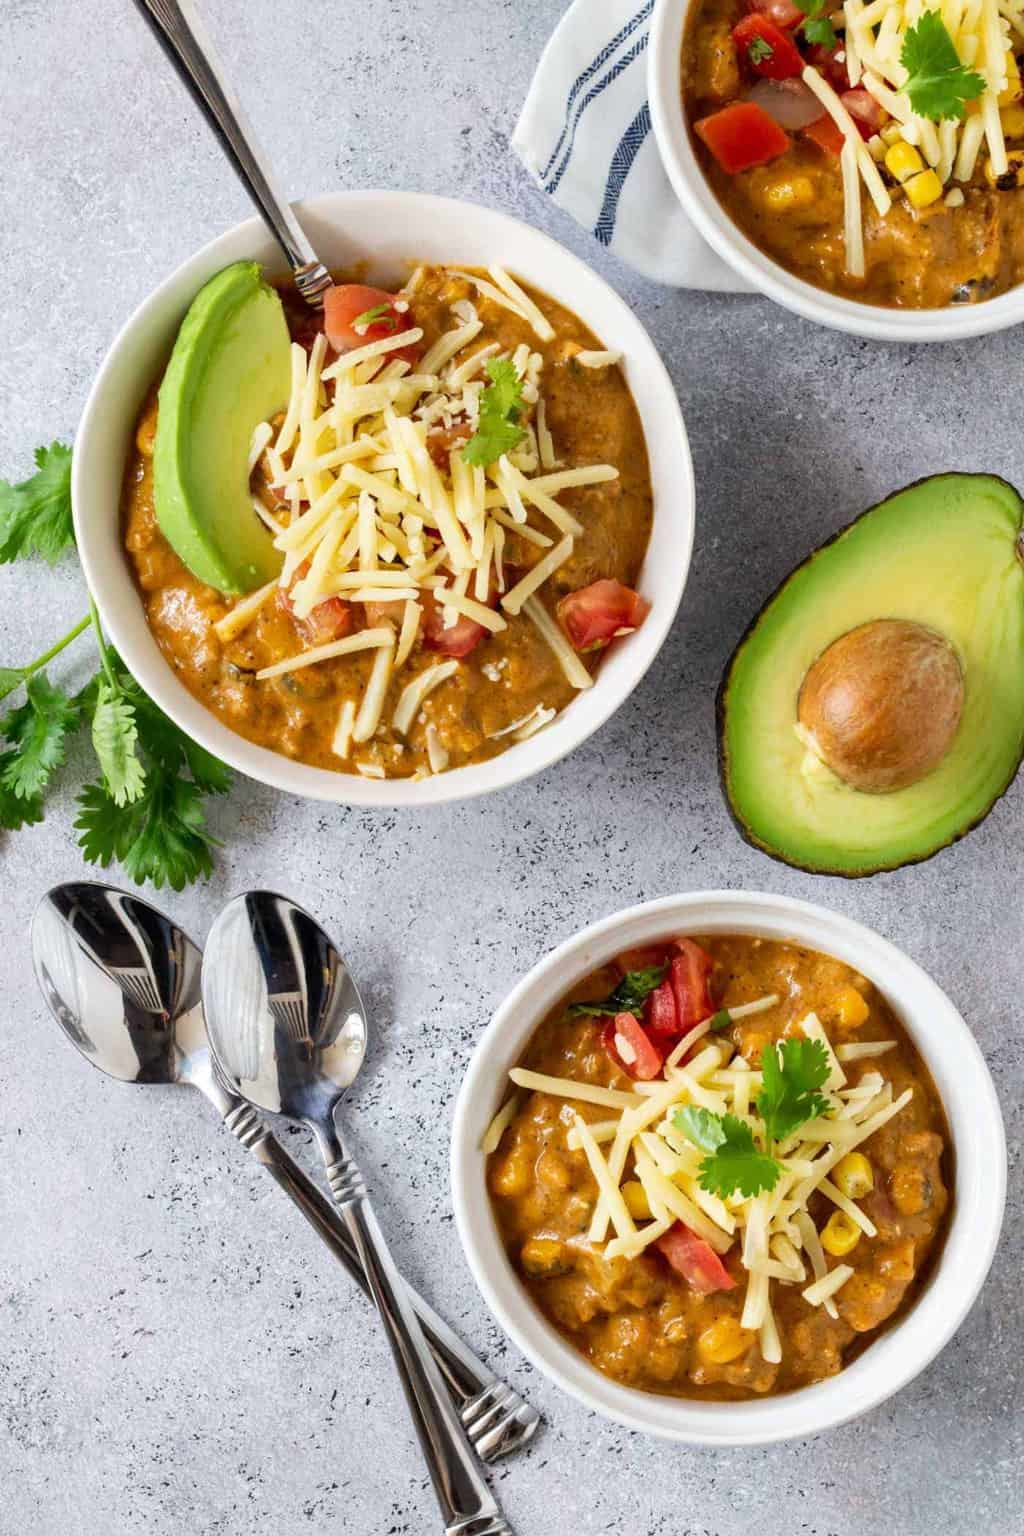 Top down image of Creamy Turkey Pumpkin Chili in white ramekins that are garnishwd with fresh avocado, cheese shreds and cilantro.